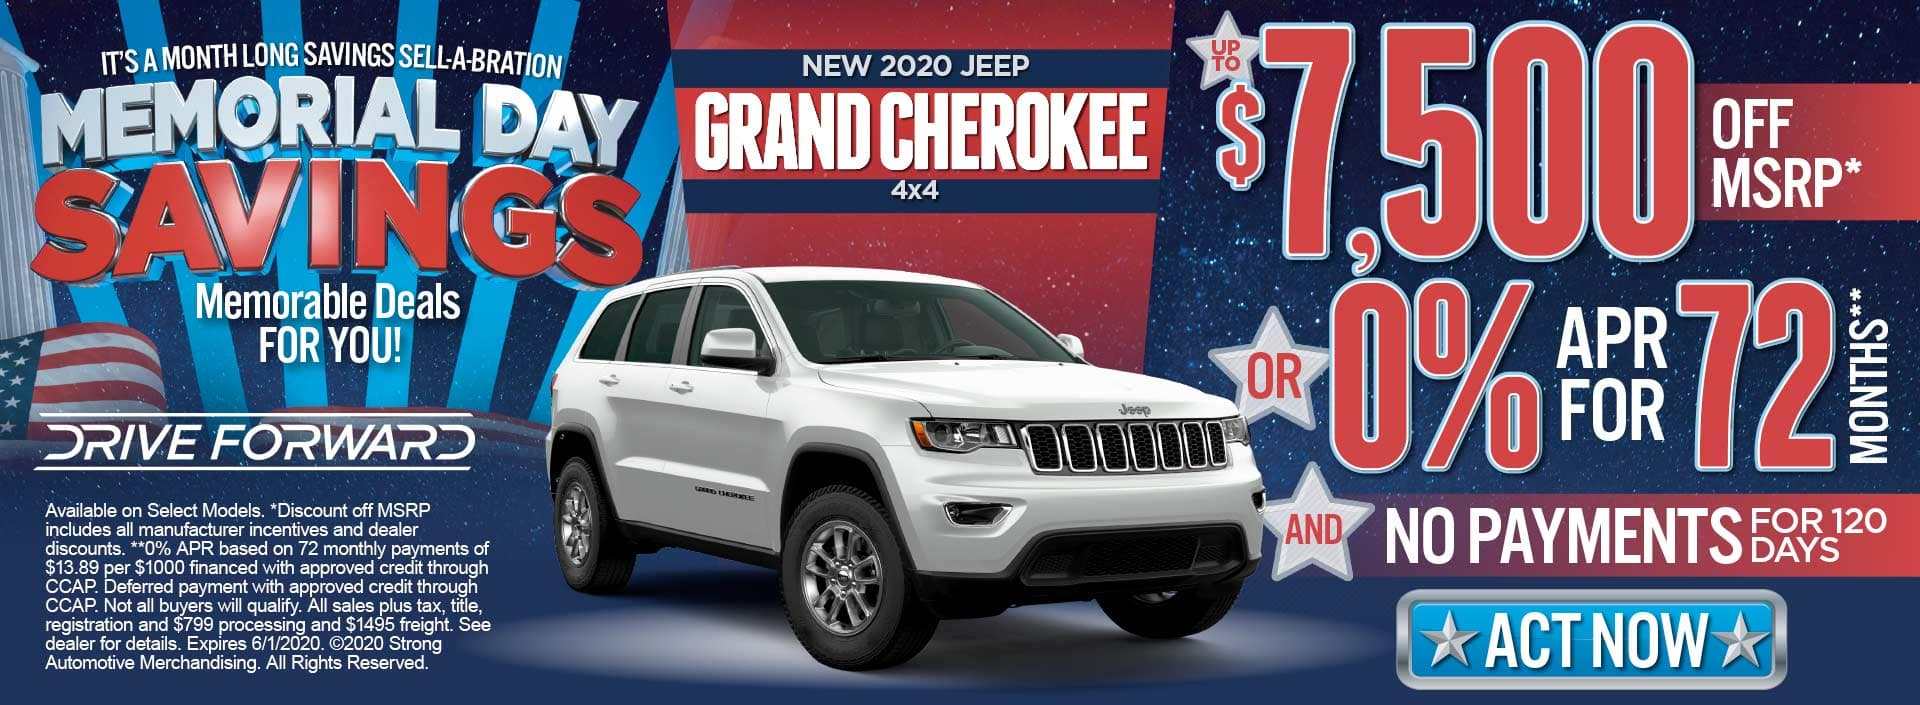 New jeep grand cherokee up to $7500 off msrp* or 0% for 72 mos** and no payments for 120 days*** act now